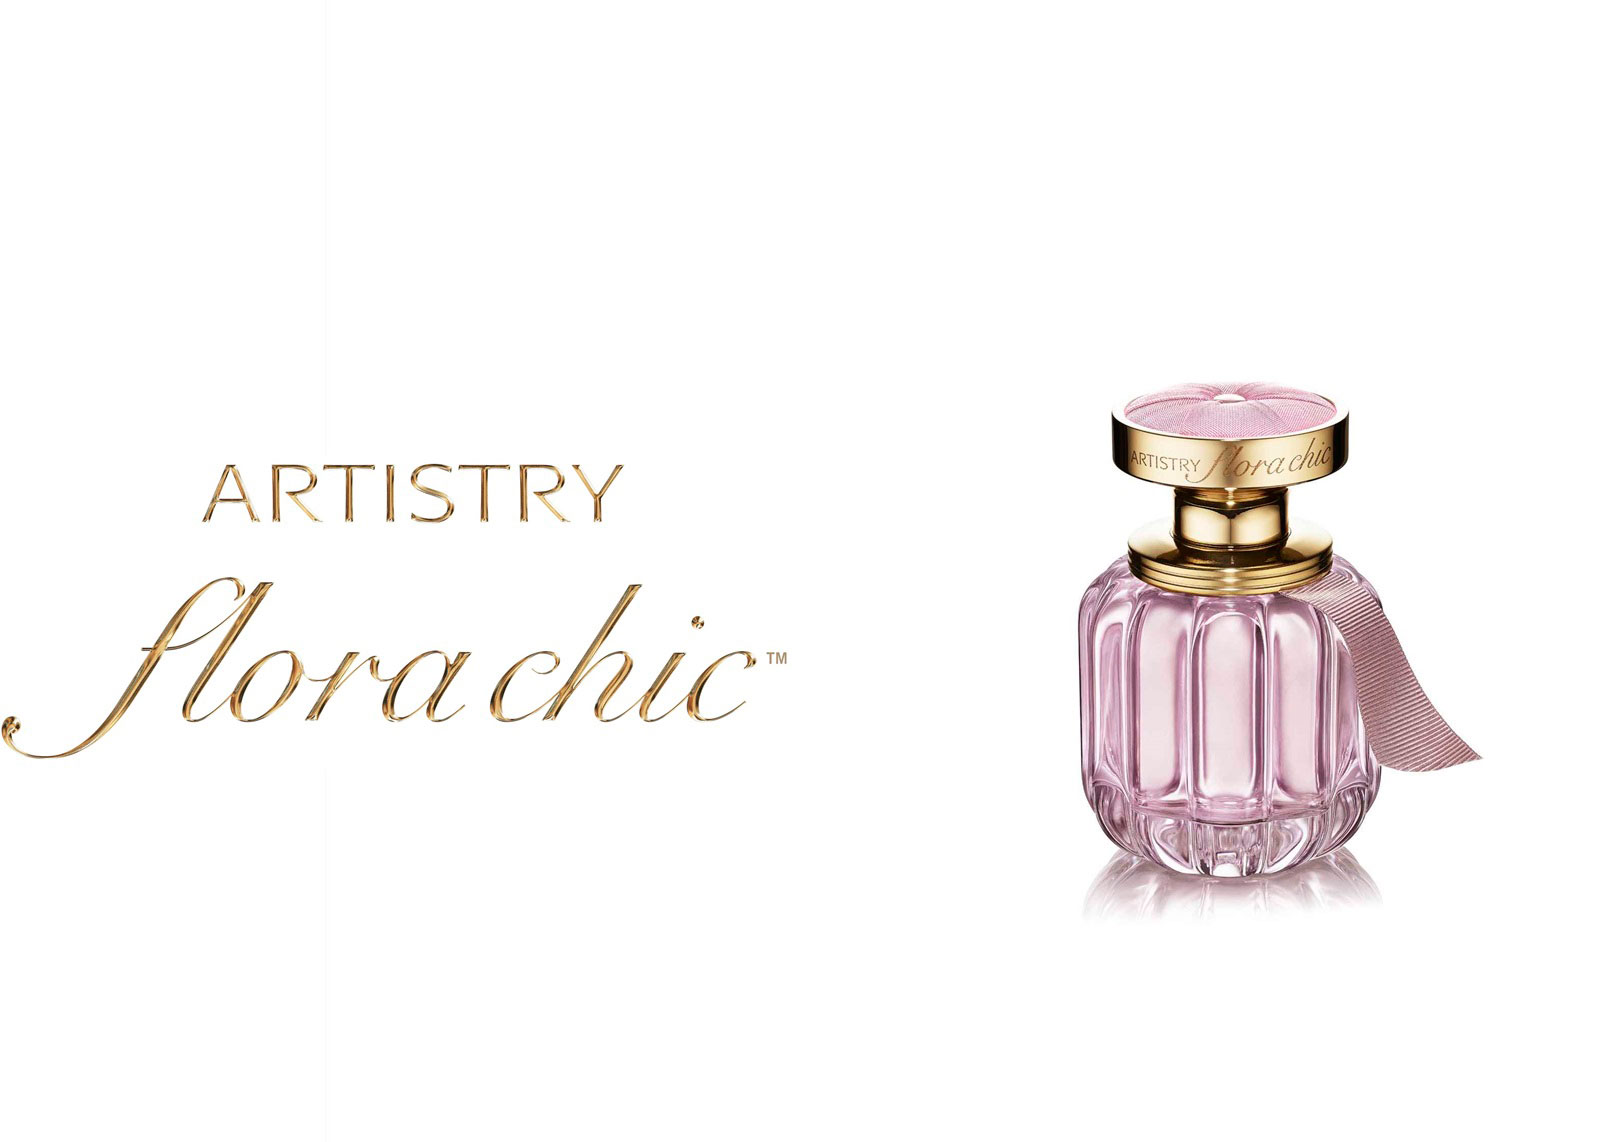 art_florachic_fragrance_a4-300dpi